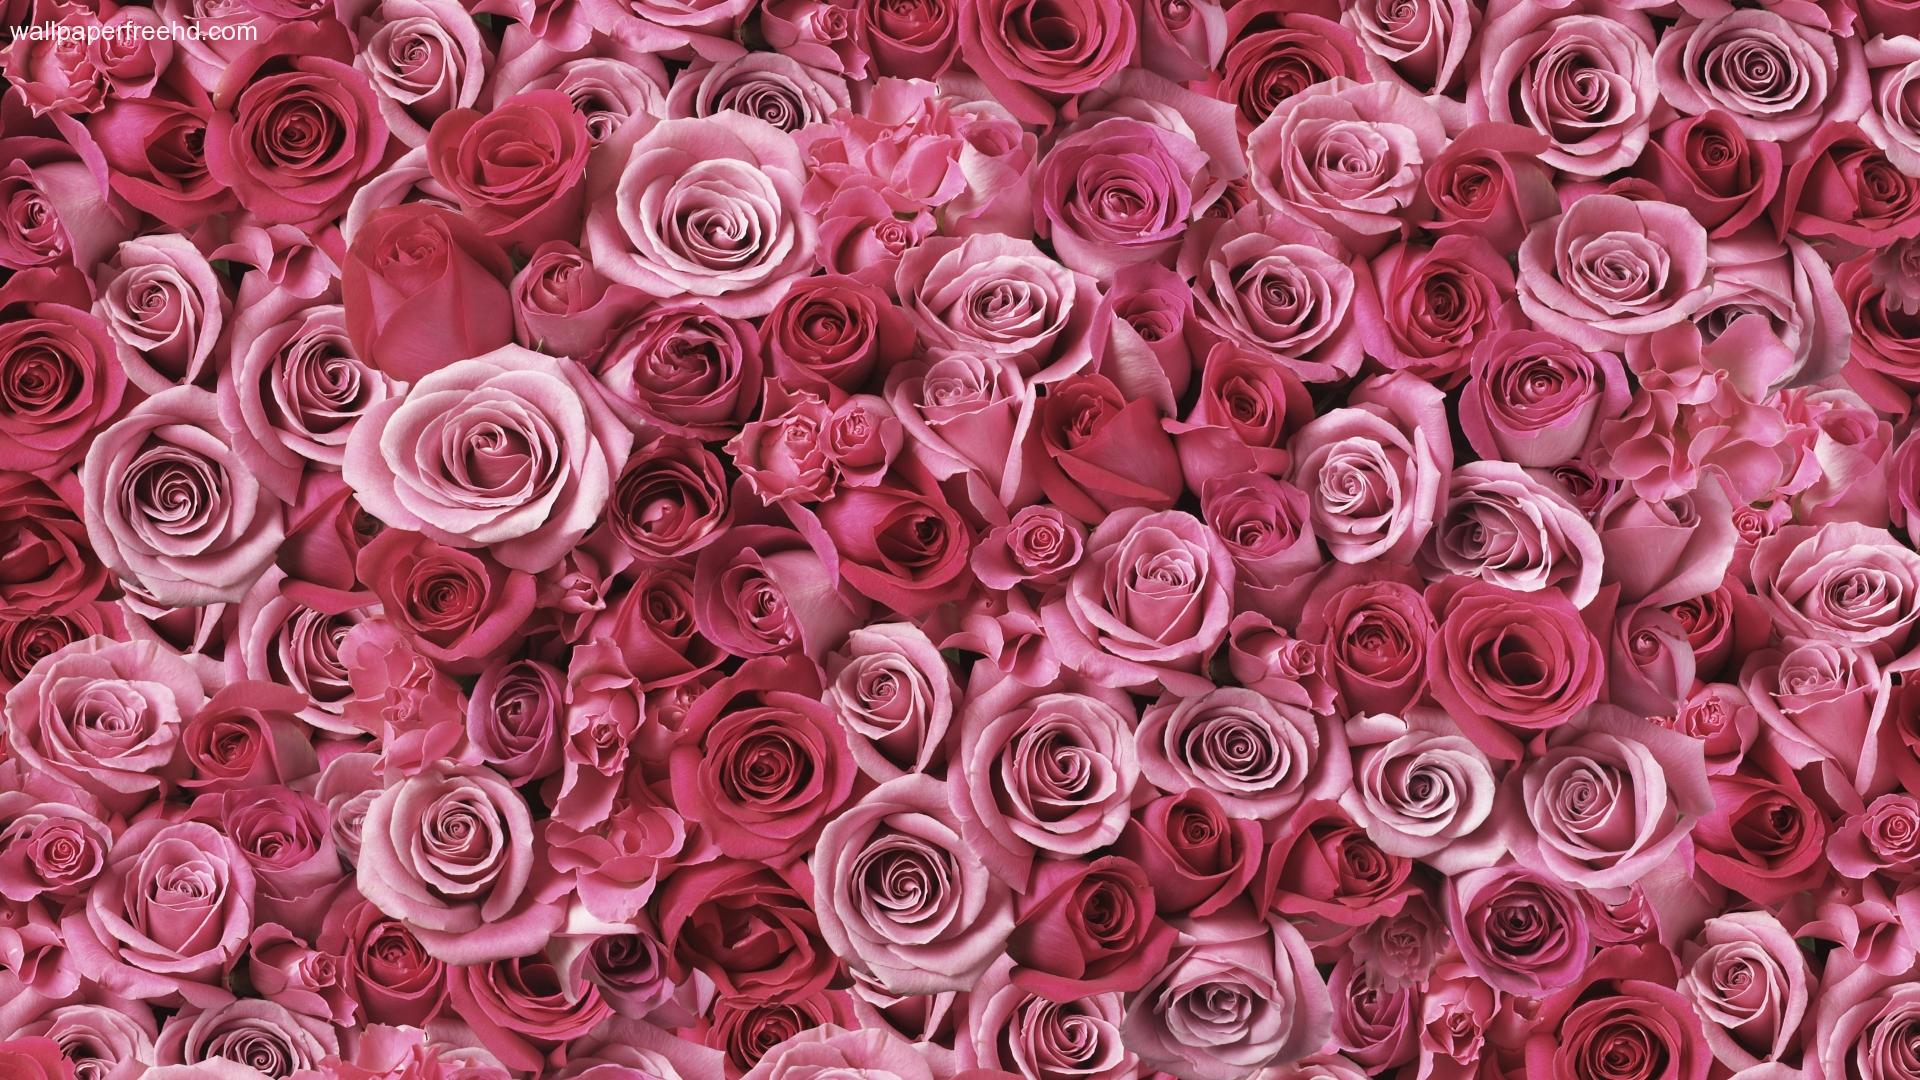 Roses Background Wallpaper Sf Wallpaper